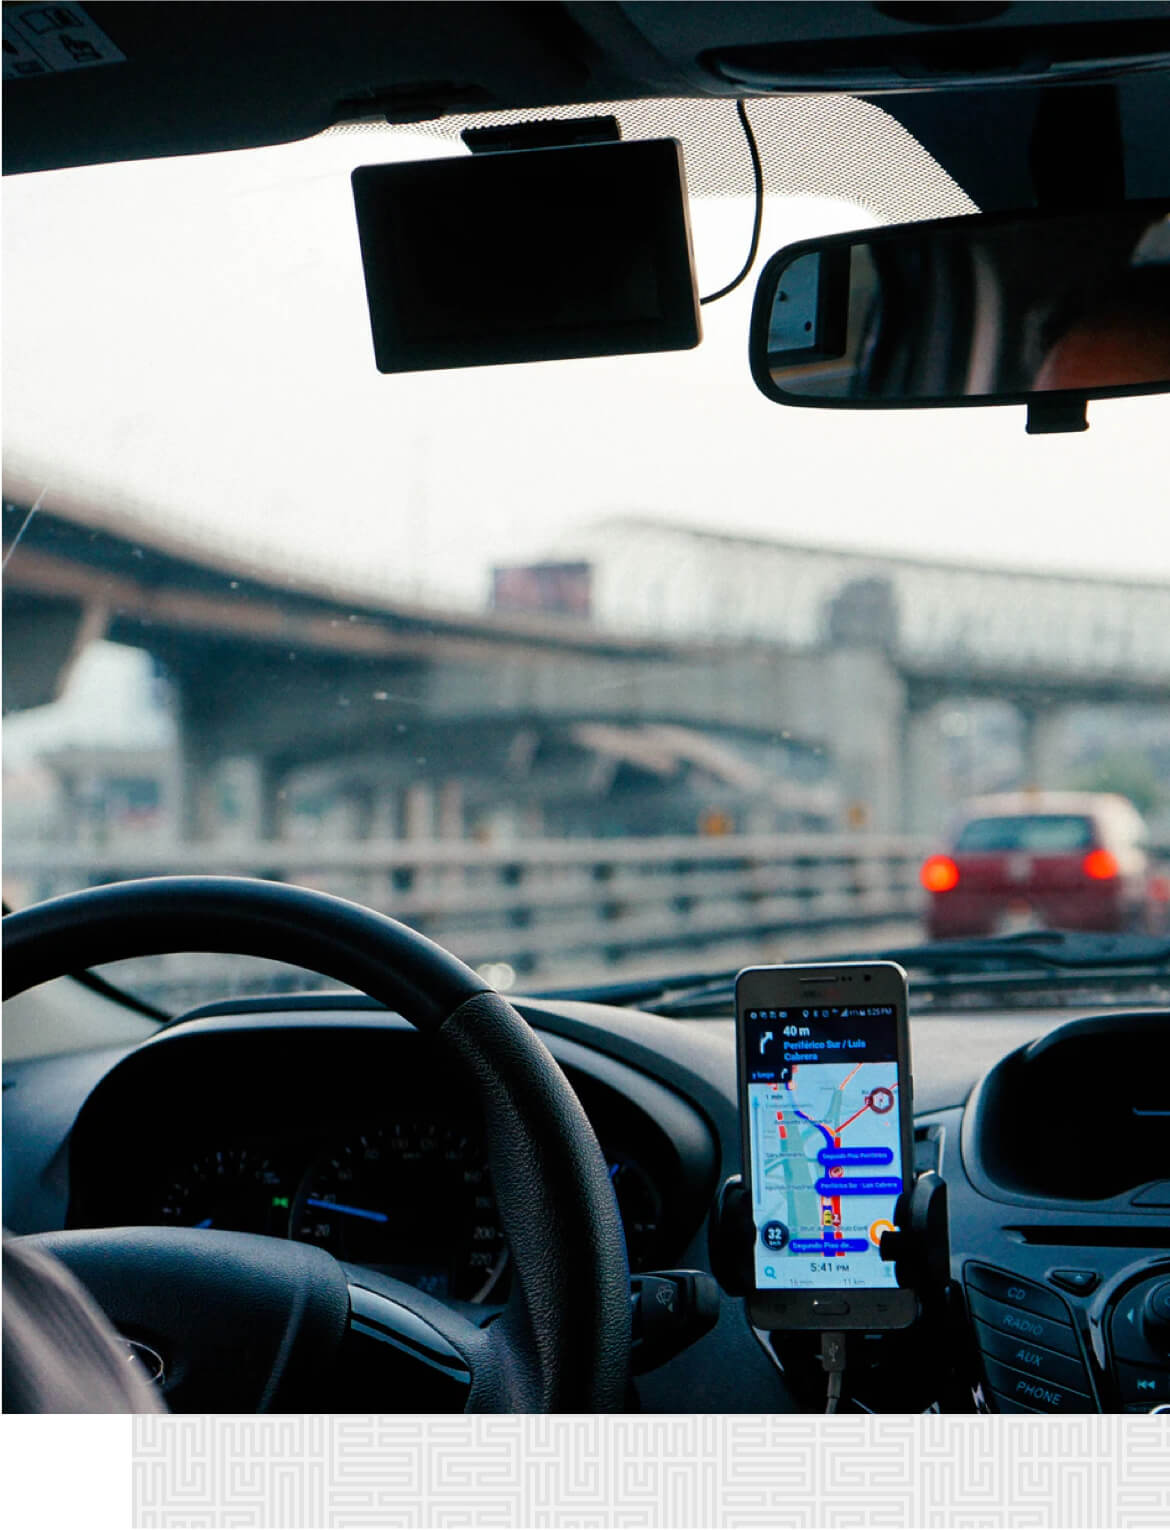 Get monetary compensation for an Uber Lyft accident